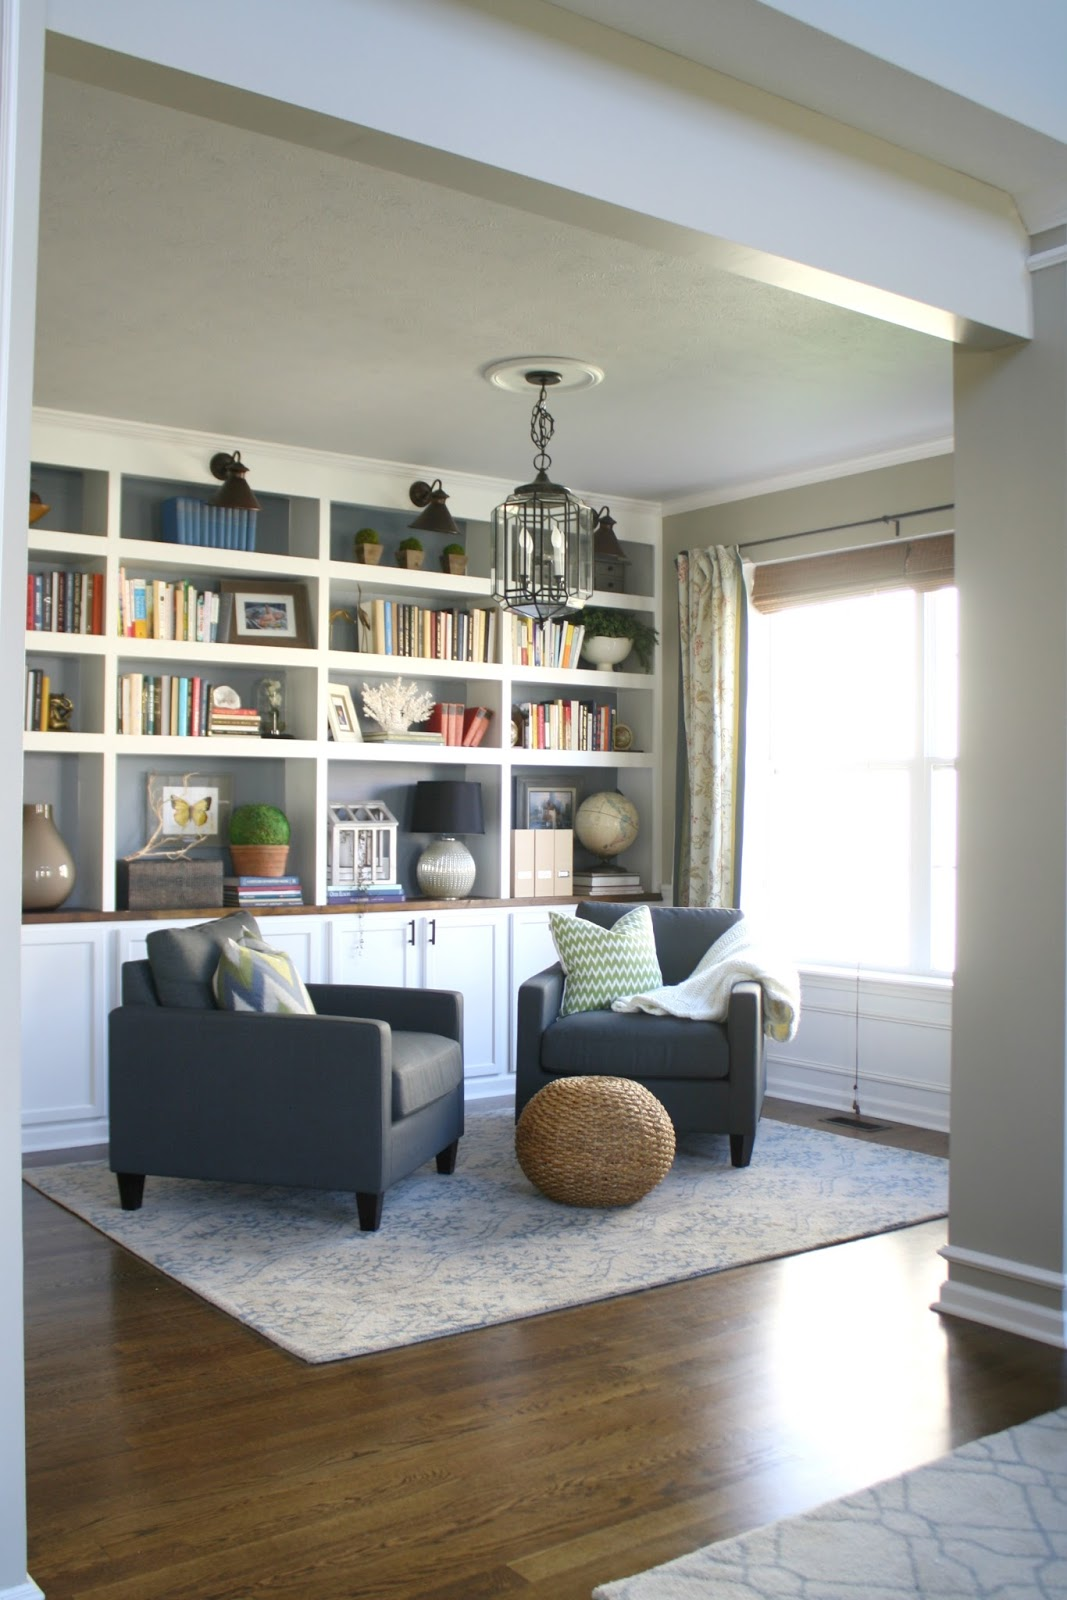 sitting room and dining room designs | The Library Is Complete! (for Real This Time) from Thrifty ...